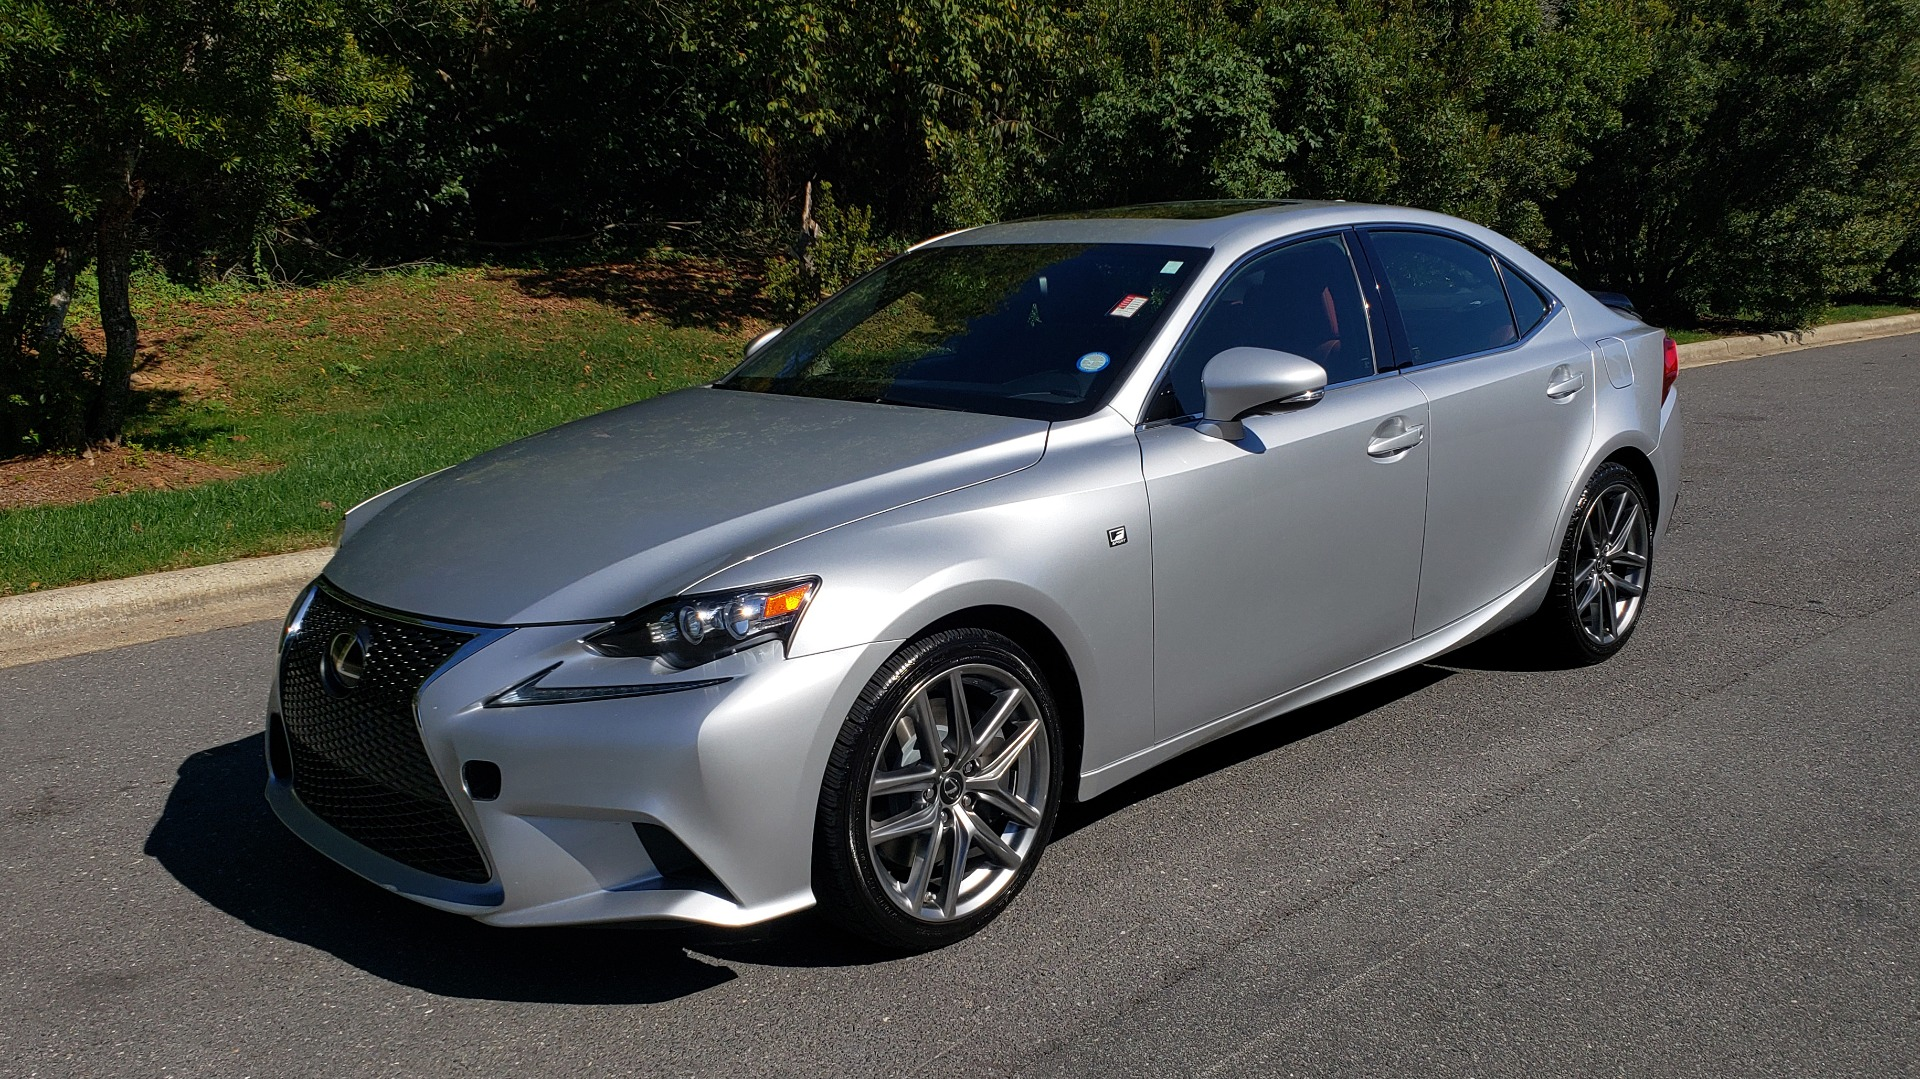 Used 2015 Lexus IS 350 F-SPORT / AWD / NAV / SUNROOF / BSM / REARVIEW for sale Sold at Formula Imports in Charlotte NC 28227 1